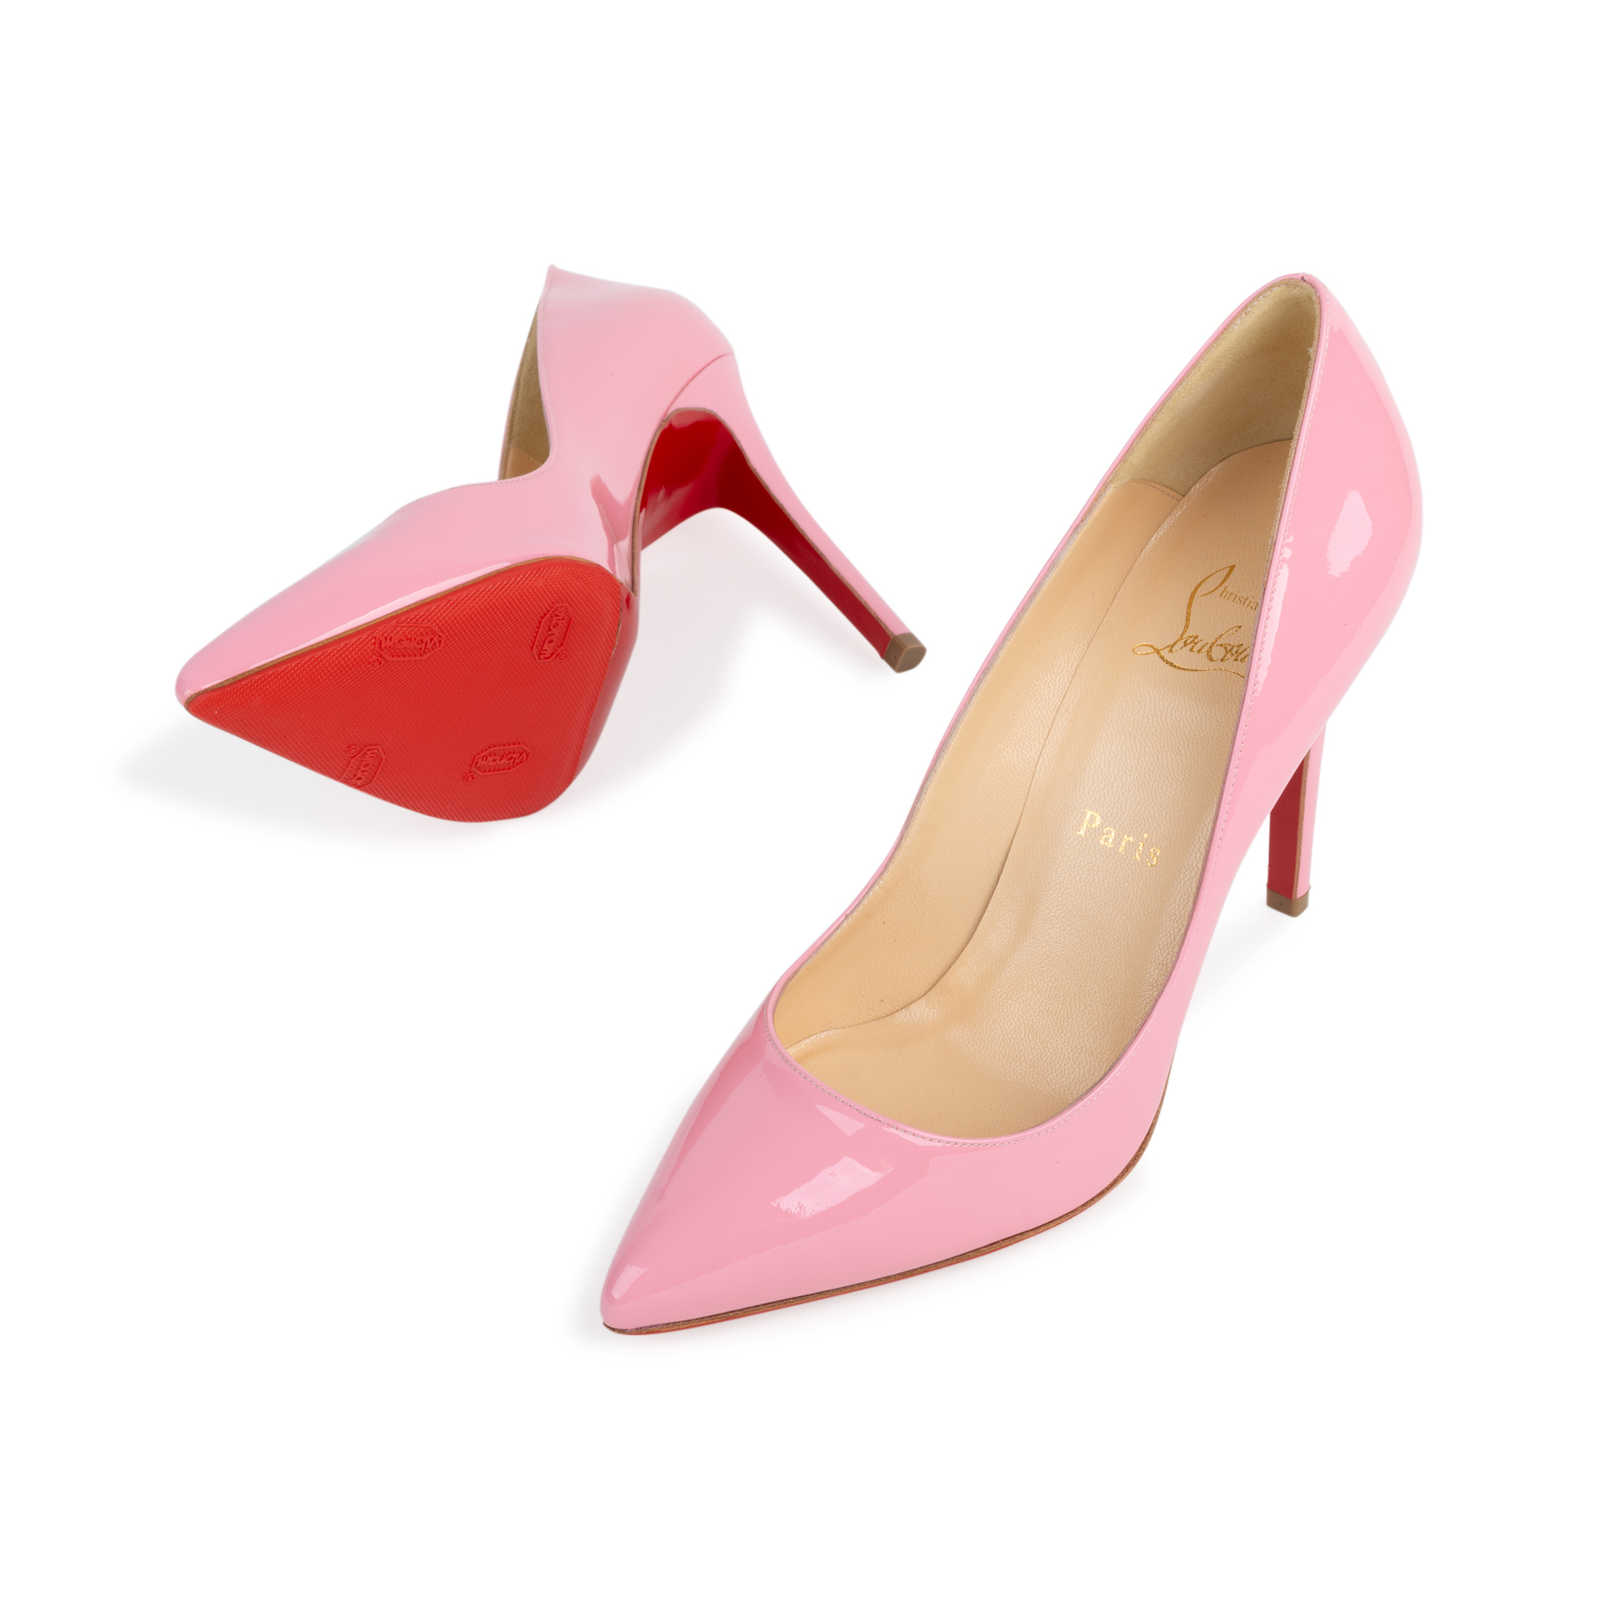 696e1d30aec4 ... Authentic Second Hand Christian Louboutin Baby Pink Pigalle 100 Pumps  (PSS-566-00106 ...